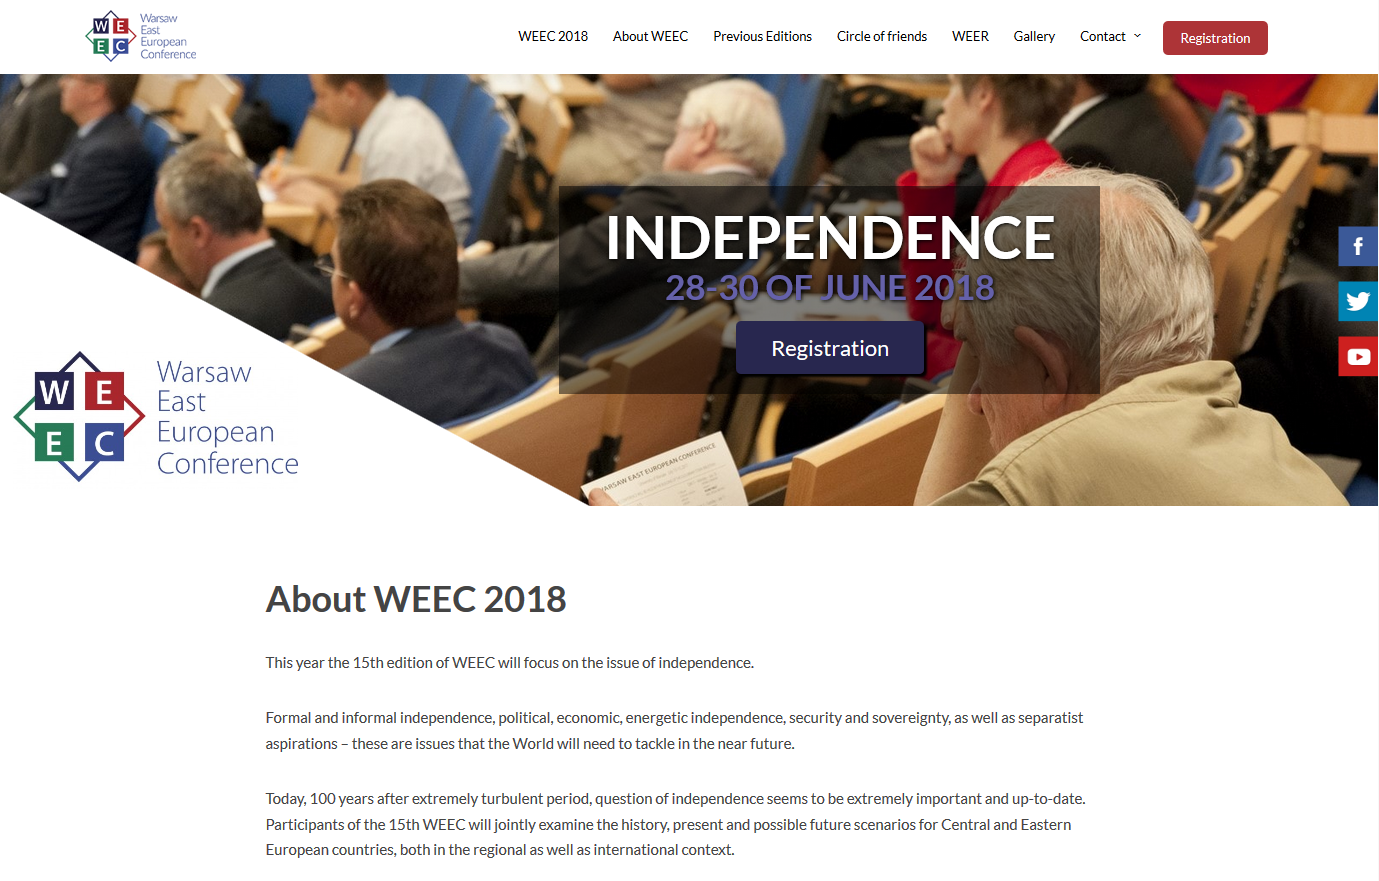 warsaw east european conference